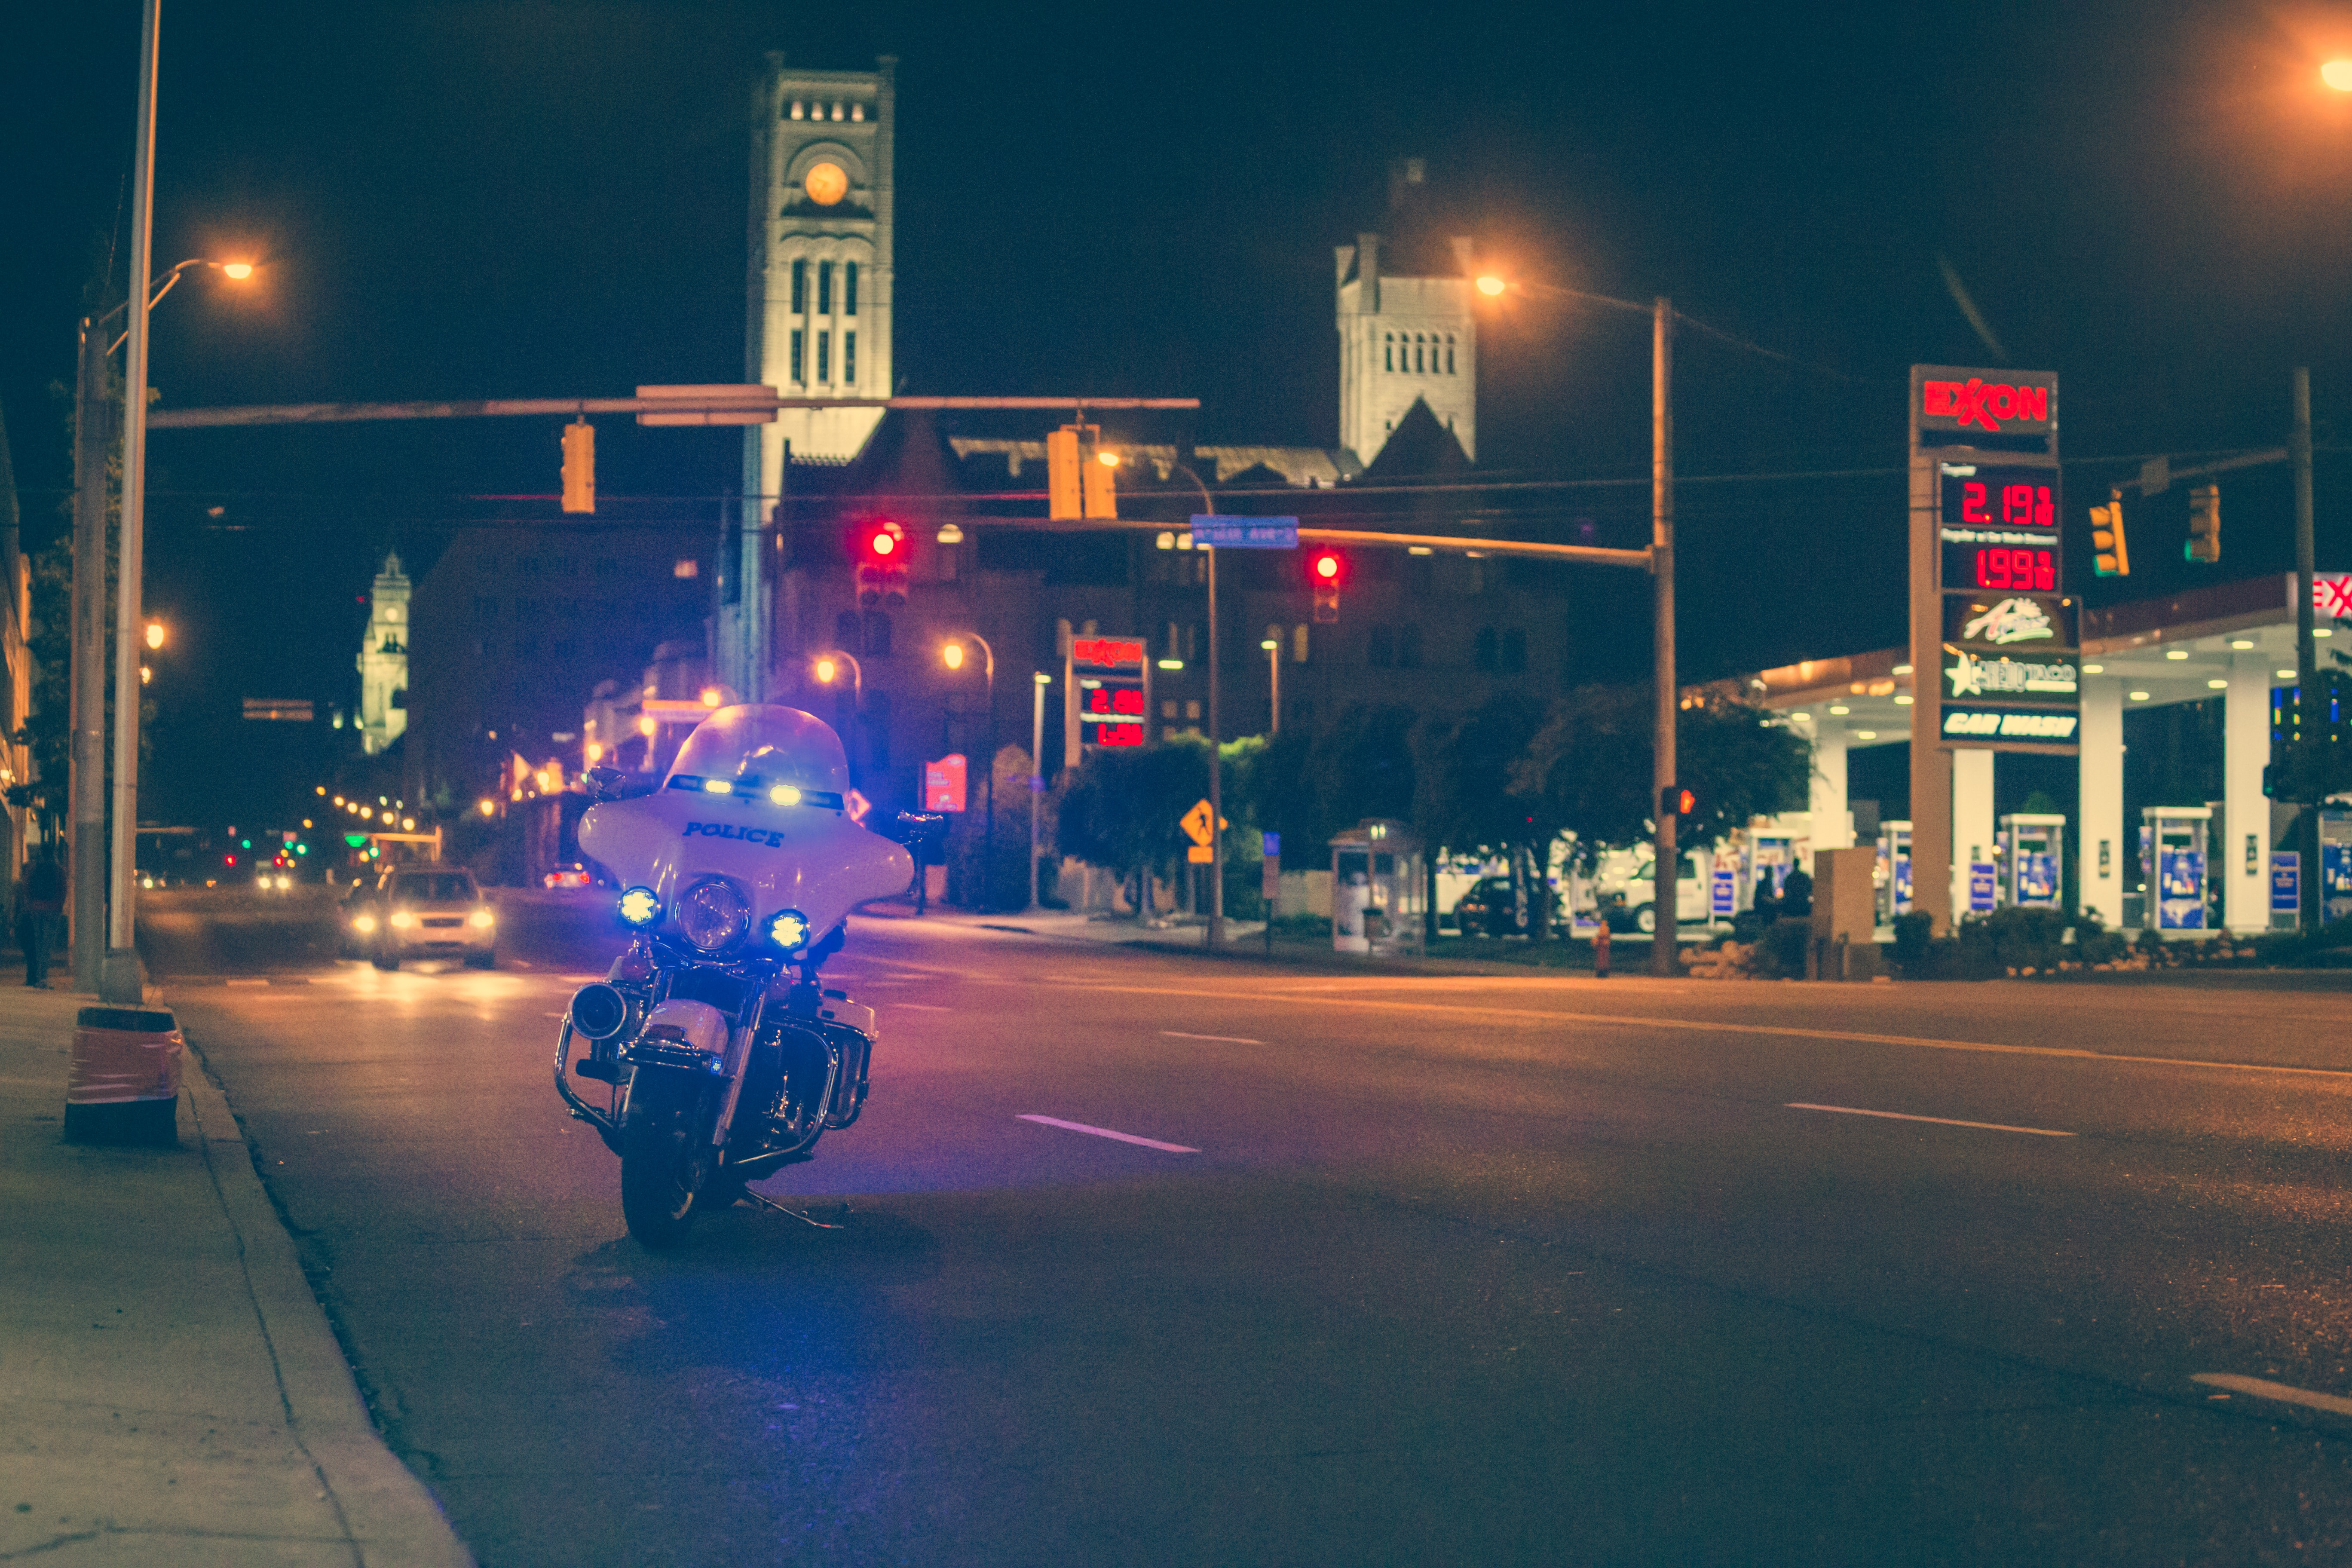 Police motorcycle with lights on parked at side of road at night; image by JP Valery, via Unsplash.com.